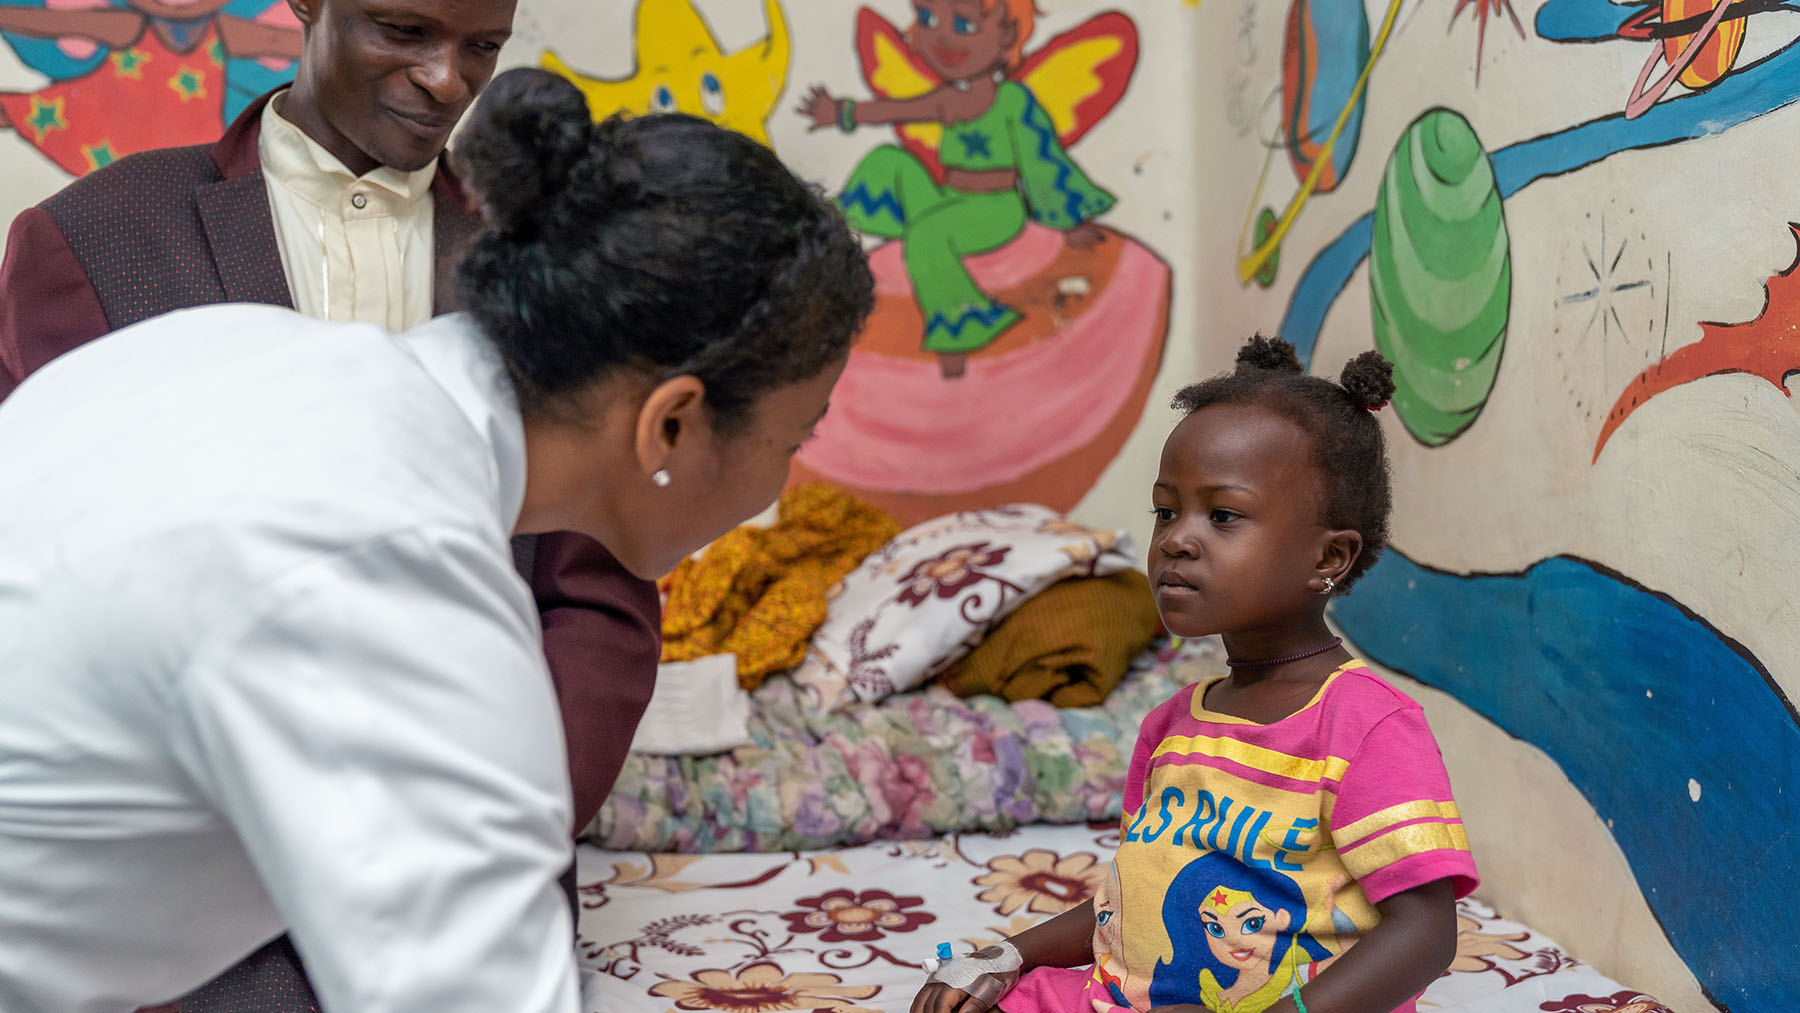 A doctor talks to a child at Mulago National Referral Hospital in Uganda. (Photo courtesy of Texas Children's Hospital)